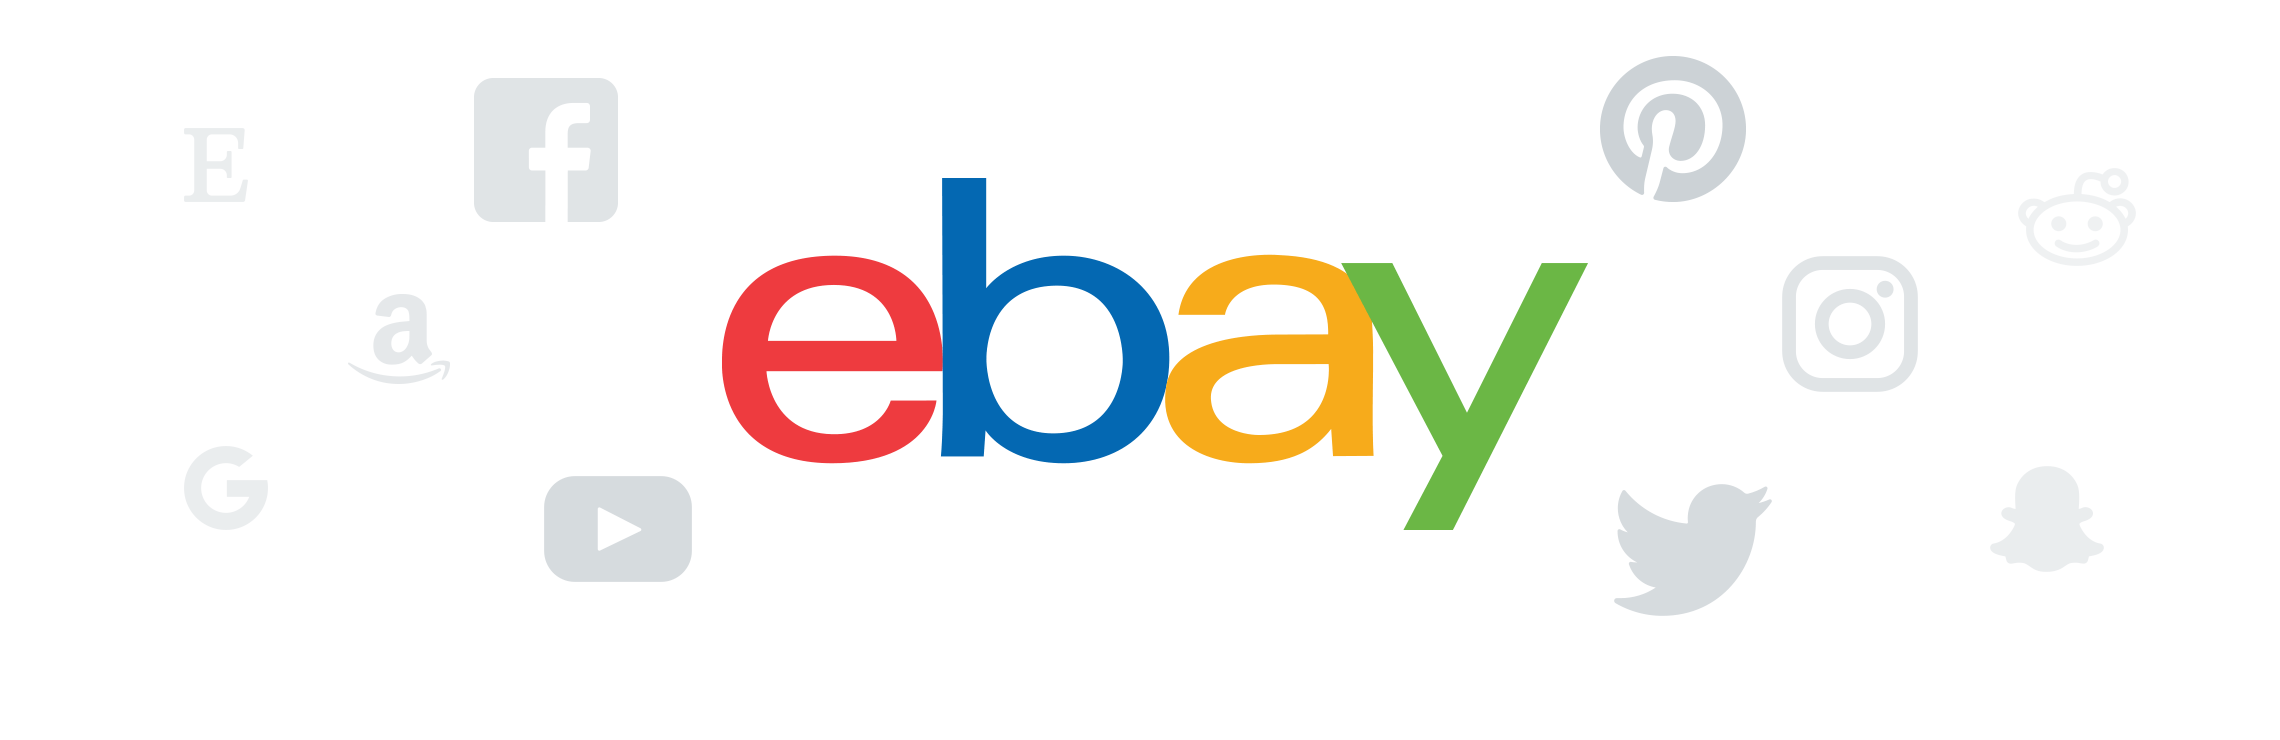 Ebay Dropshipping The Ultimate Guide To Dropshipping On Ebay Marketing Guide Ebay Advertising